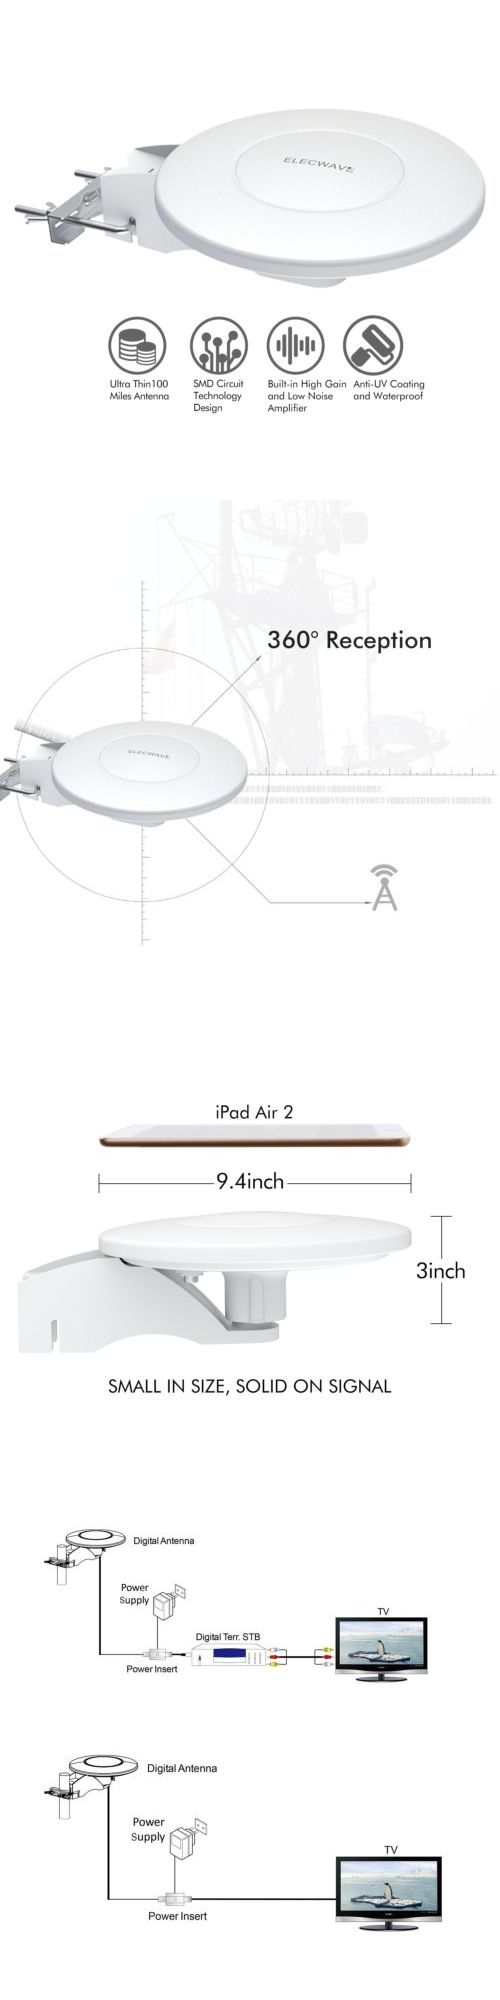 Antennas and Dishes: 360º Hdtv Hd Digital 4K Indoor Outdoor Omni All Direction Amplified Tv Antenna -> BUY IT NOW ONLY: $30.58 on eBay!